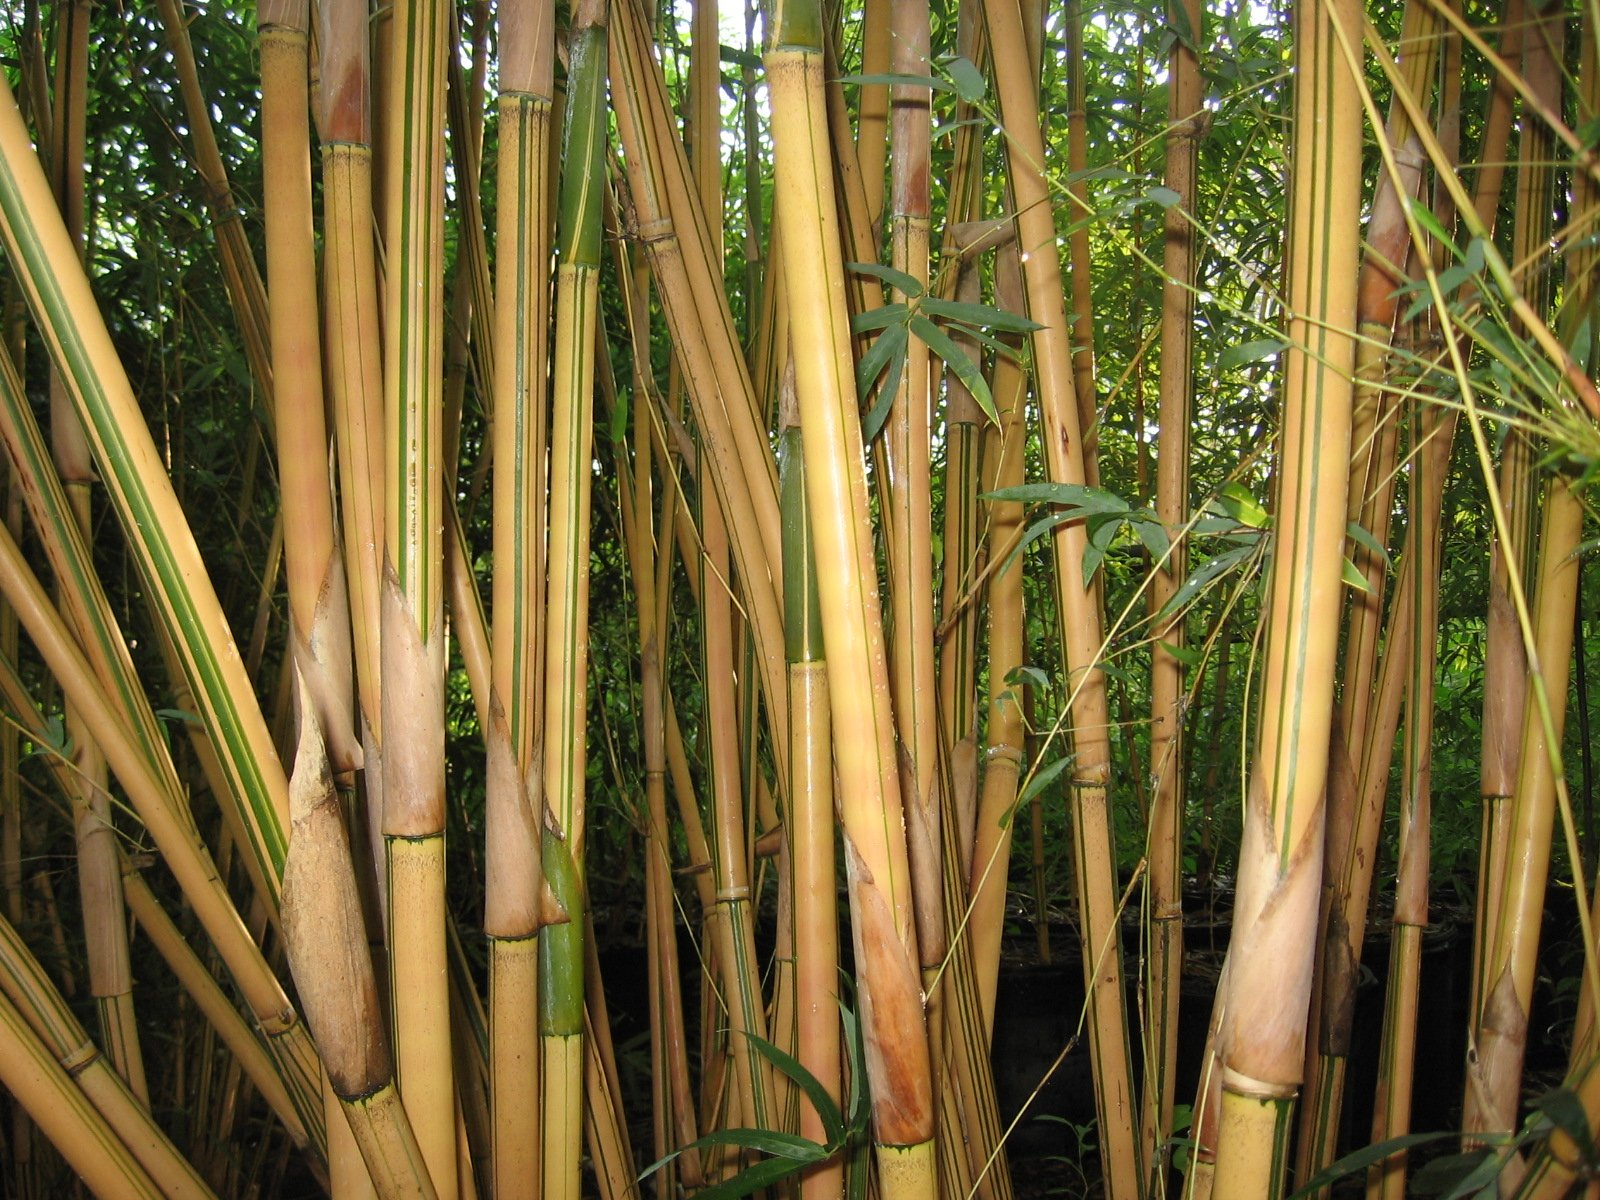 Alphonse Karr Bamboo Clumping Non Invasive Privacy Hedge by Florida Foliage (Image #2)